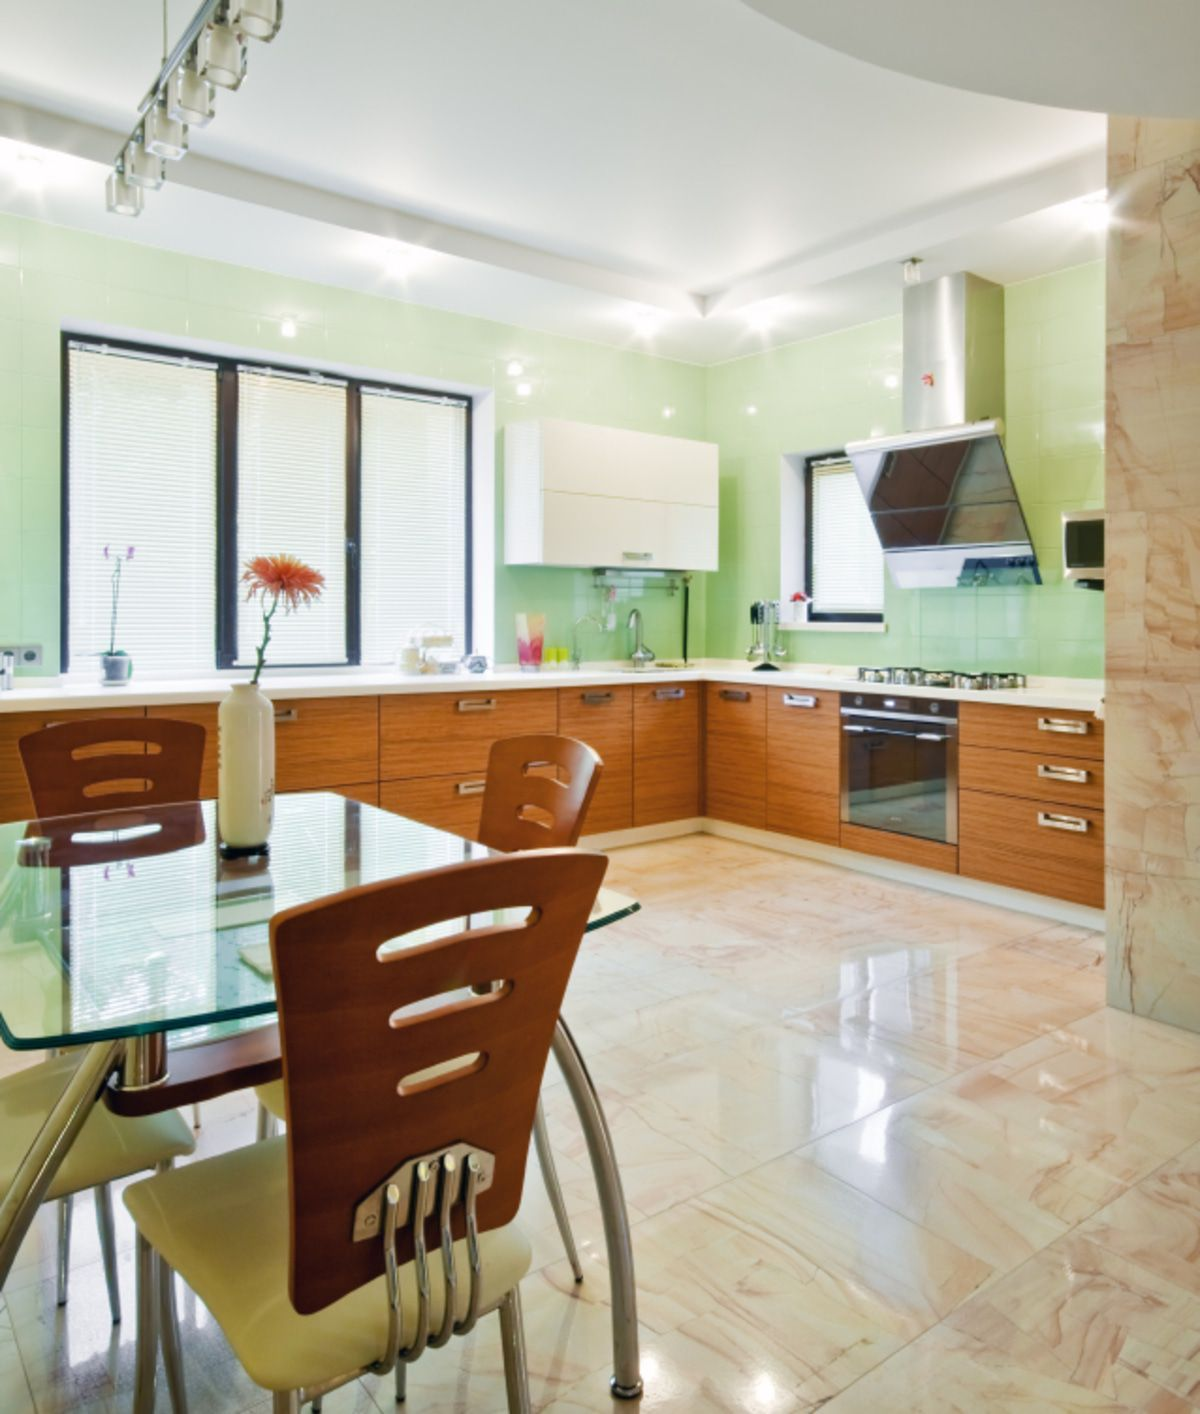 How Much Does Radiant Heating Cost in a New York Kitchen ...